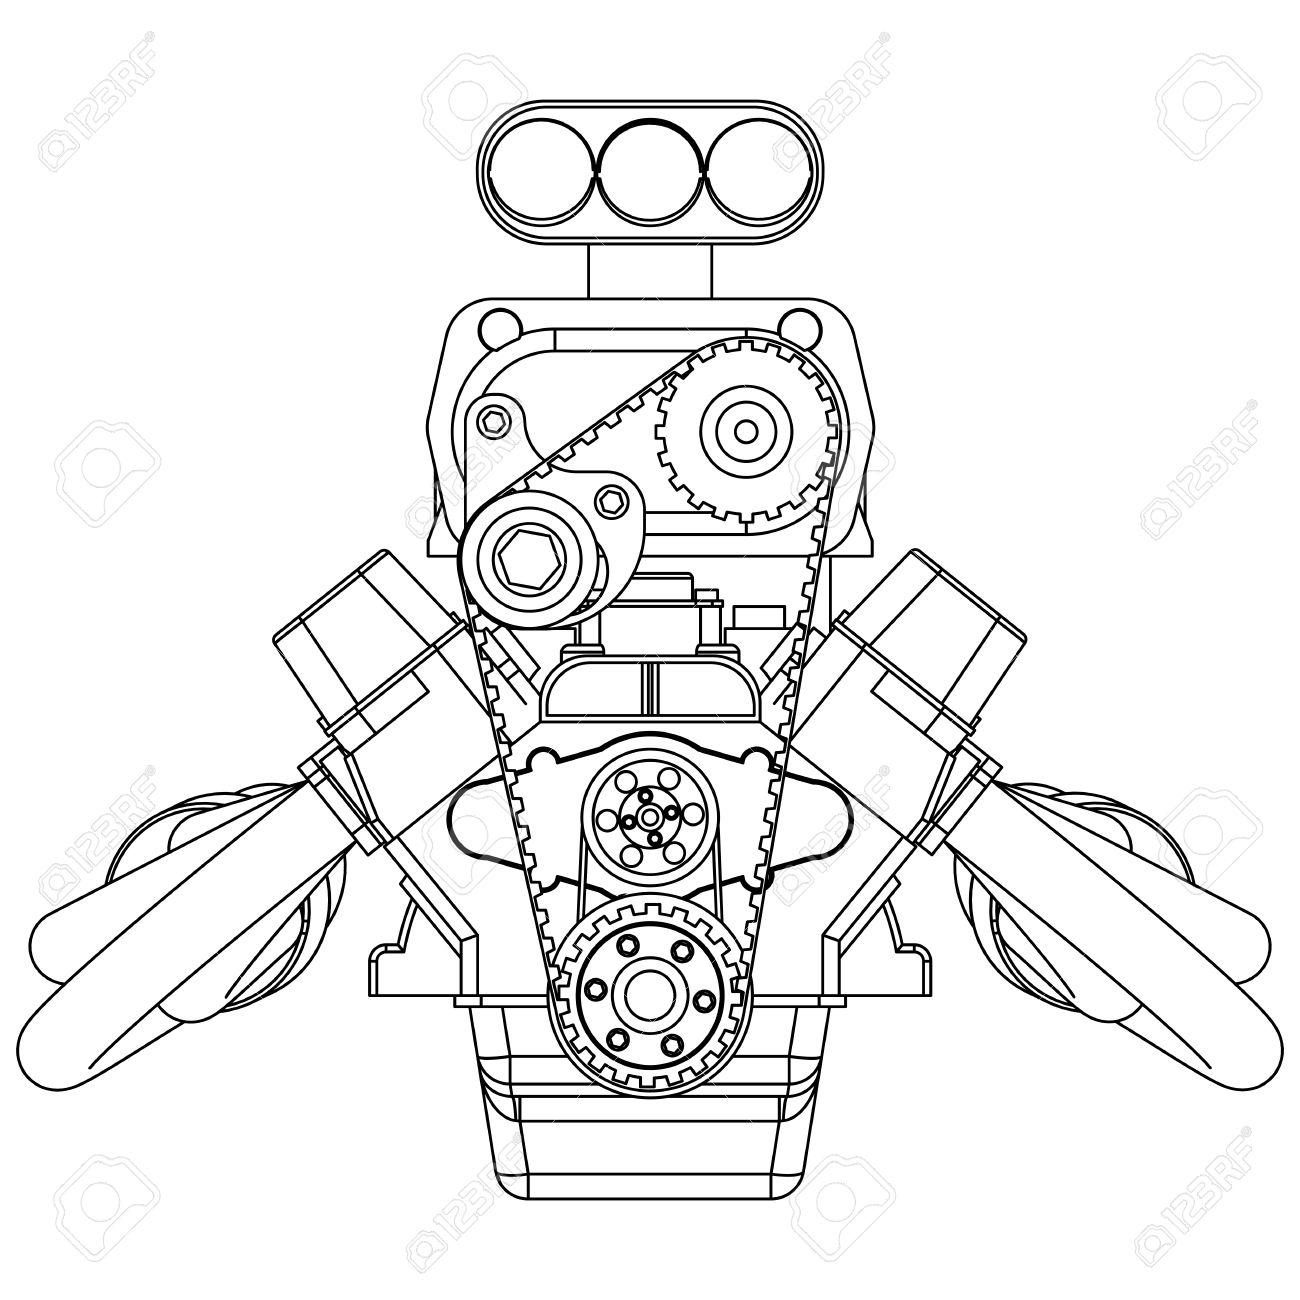 Schematic drawing of Hot Rod Engine. Vector illustration - 52023386